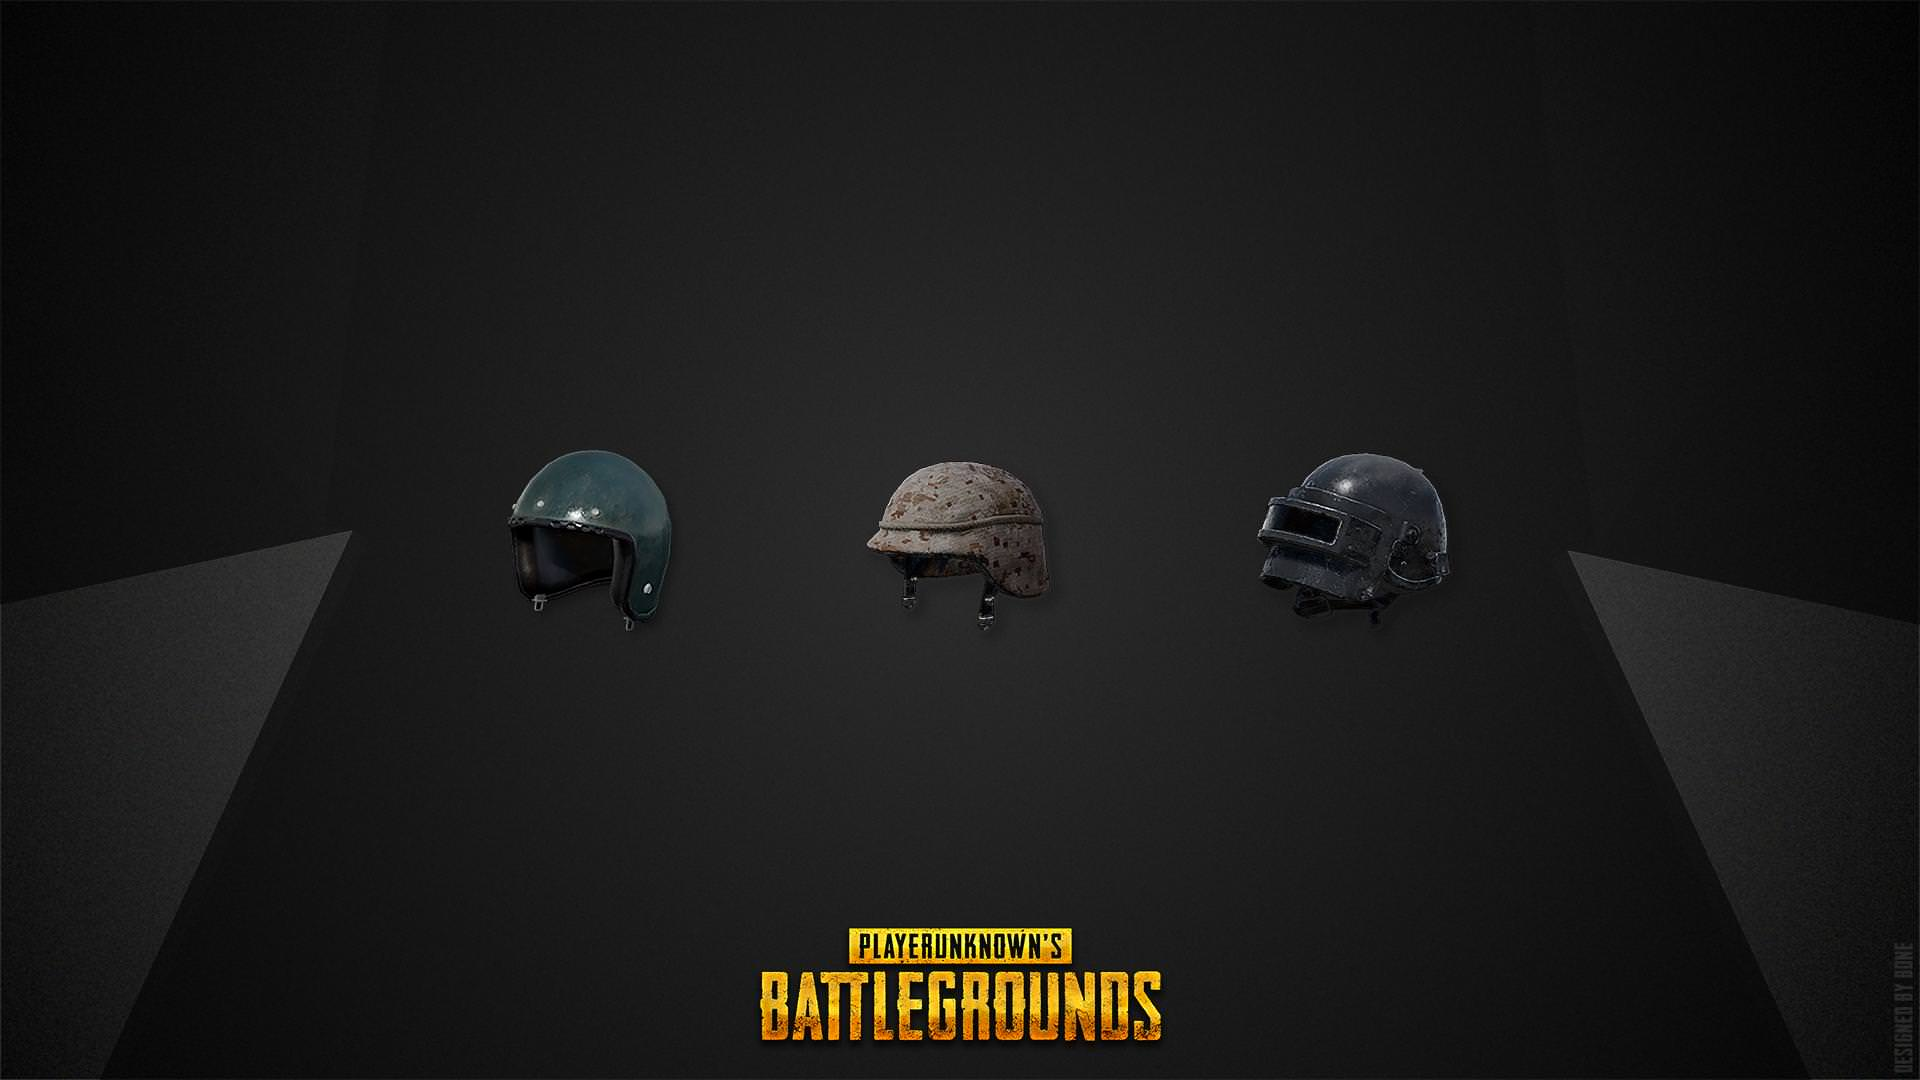 Pubg Wallpapers Hd Mobile: PUBG Black Wallpapers